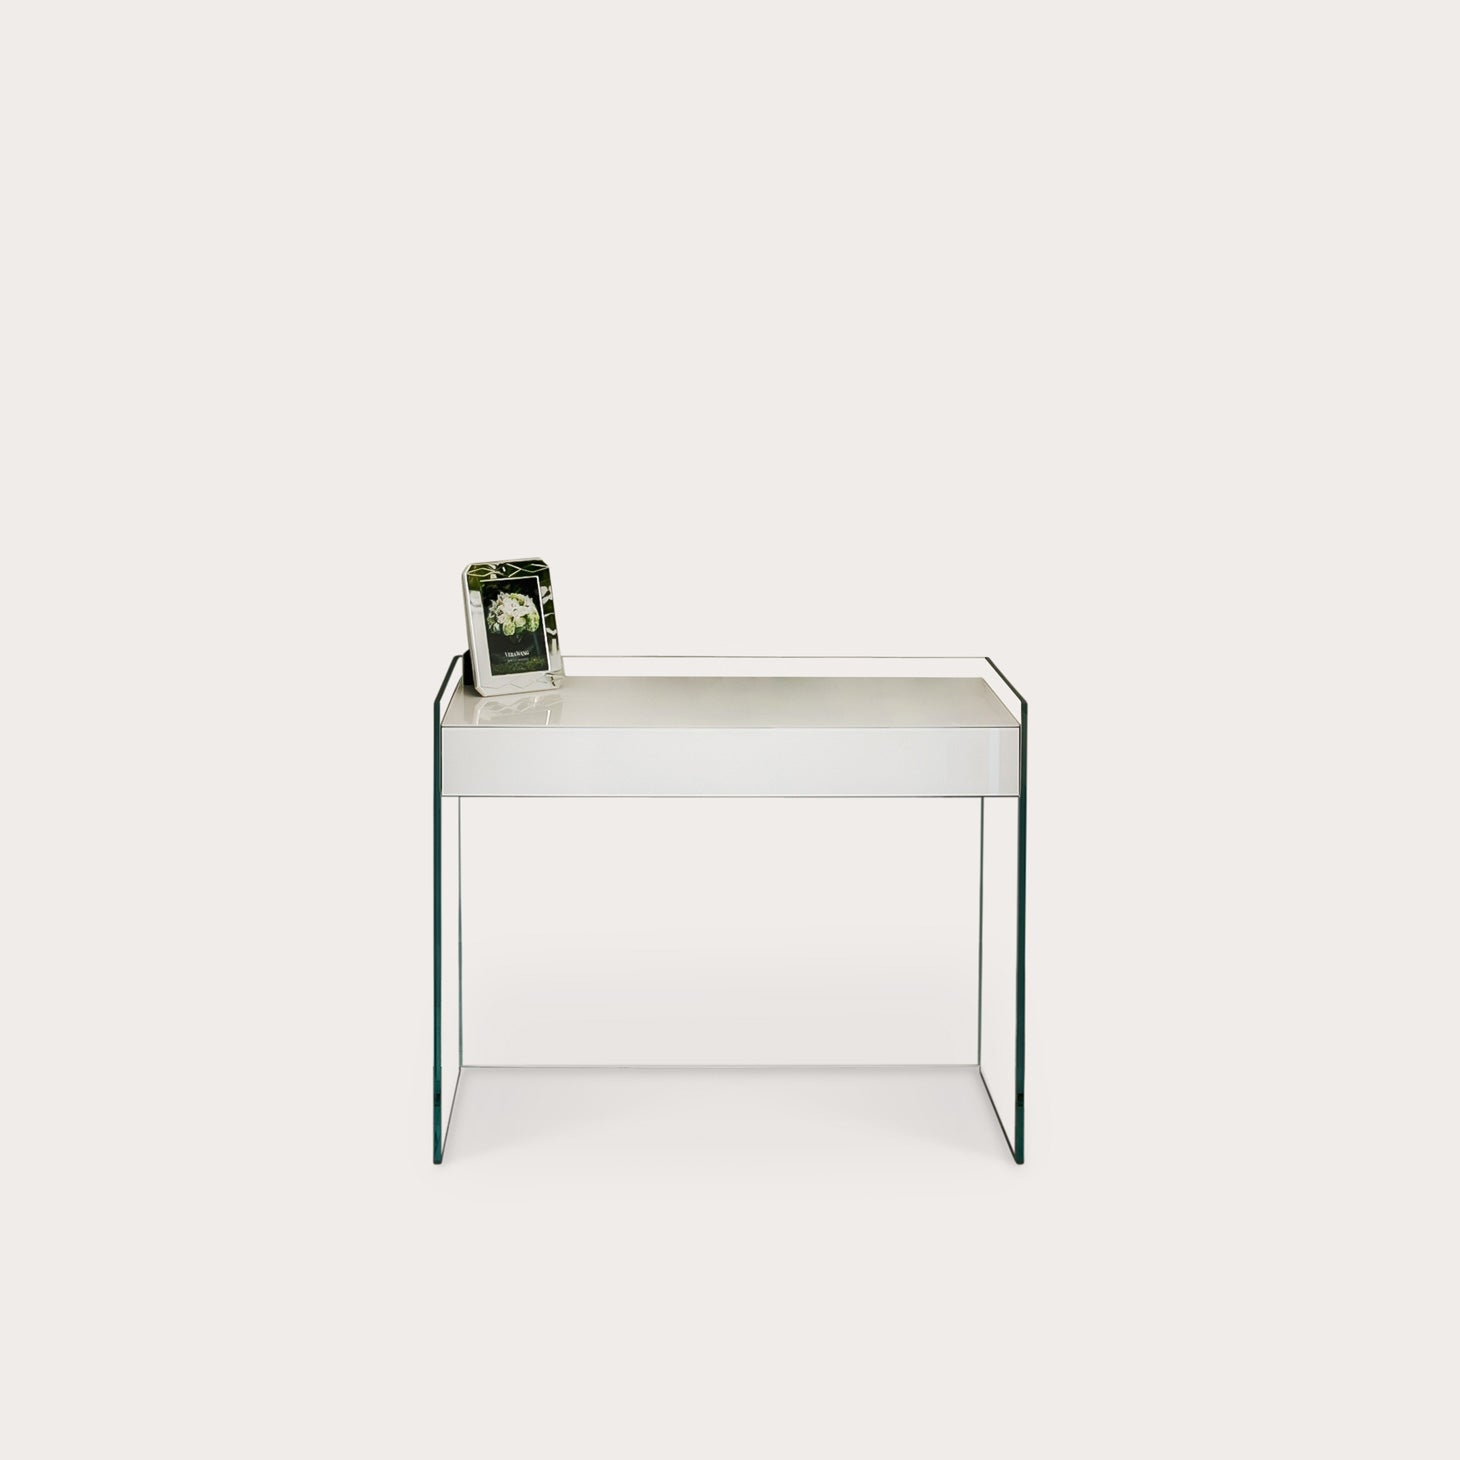 Float Desk Tables Patrick Norguet Designer Furniture Sku: 288-230-10226